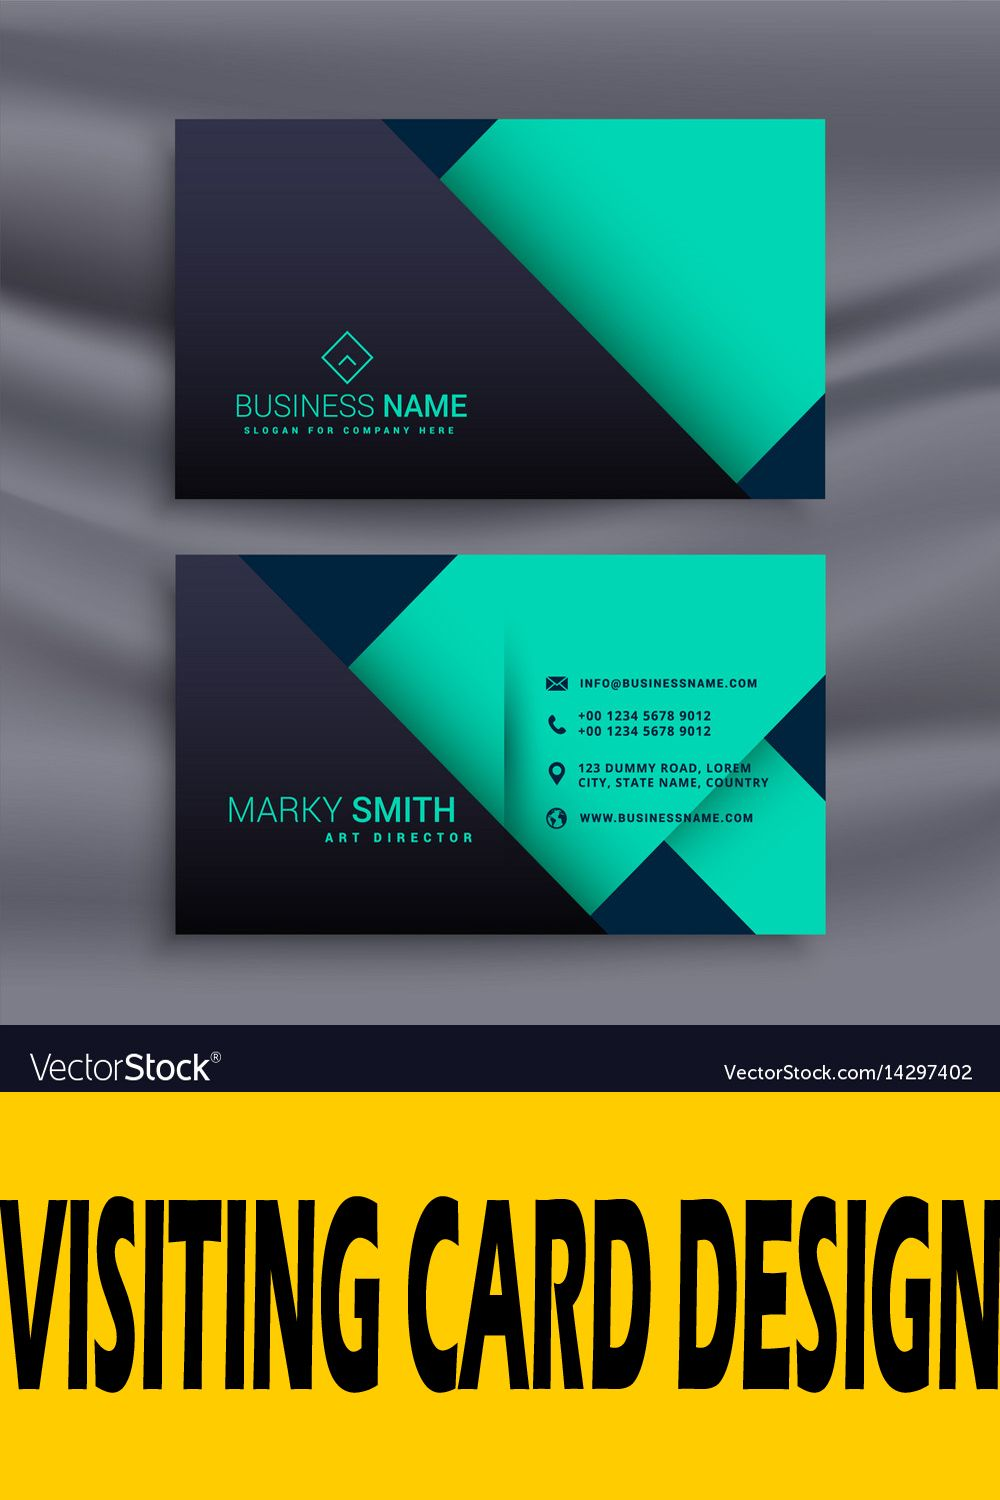 Visiting Card In 2020 Visiting Cards Visiting Card Design Business Card Design Software